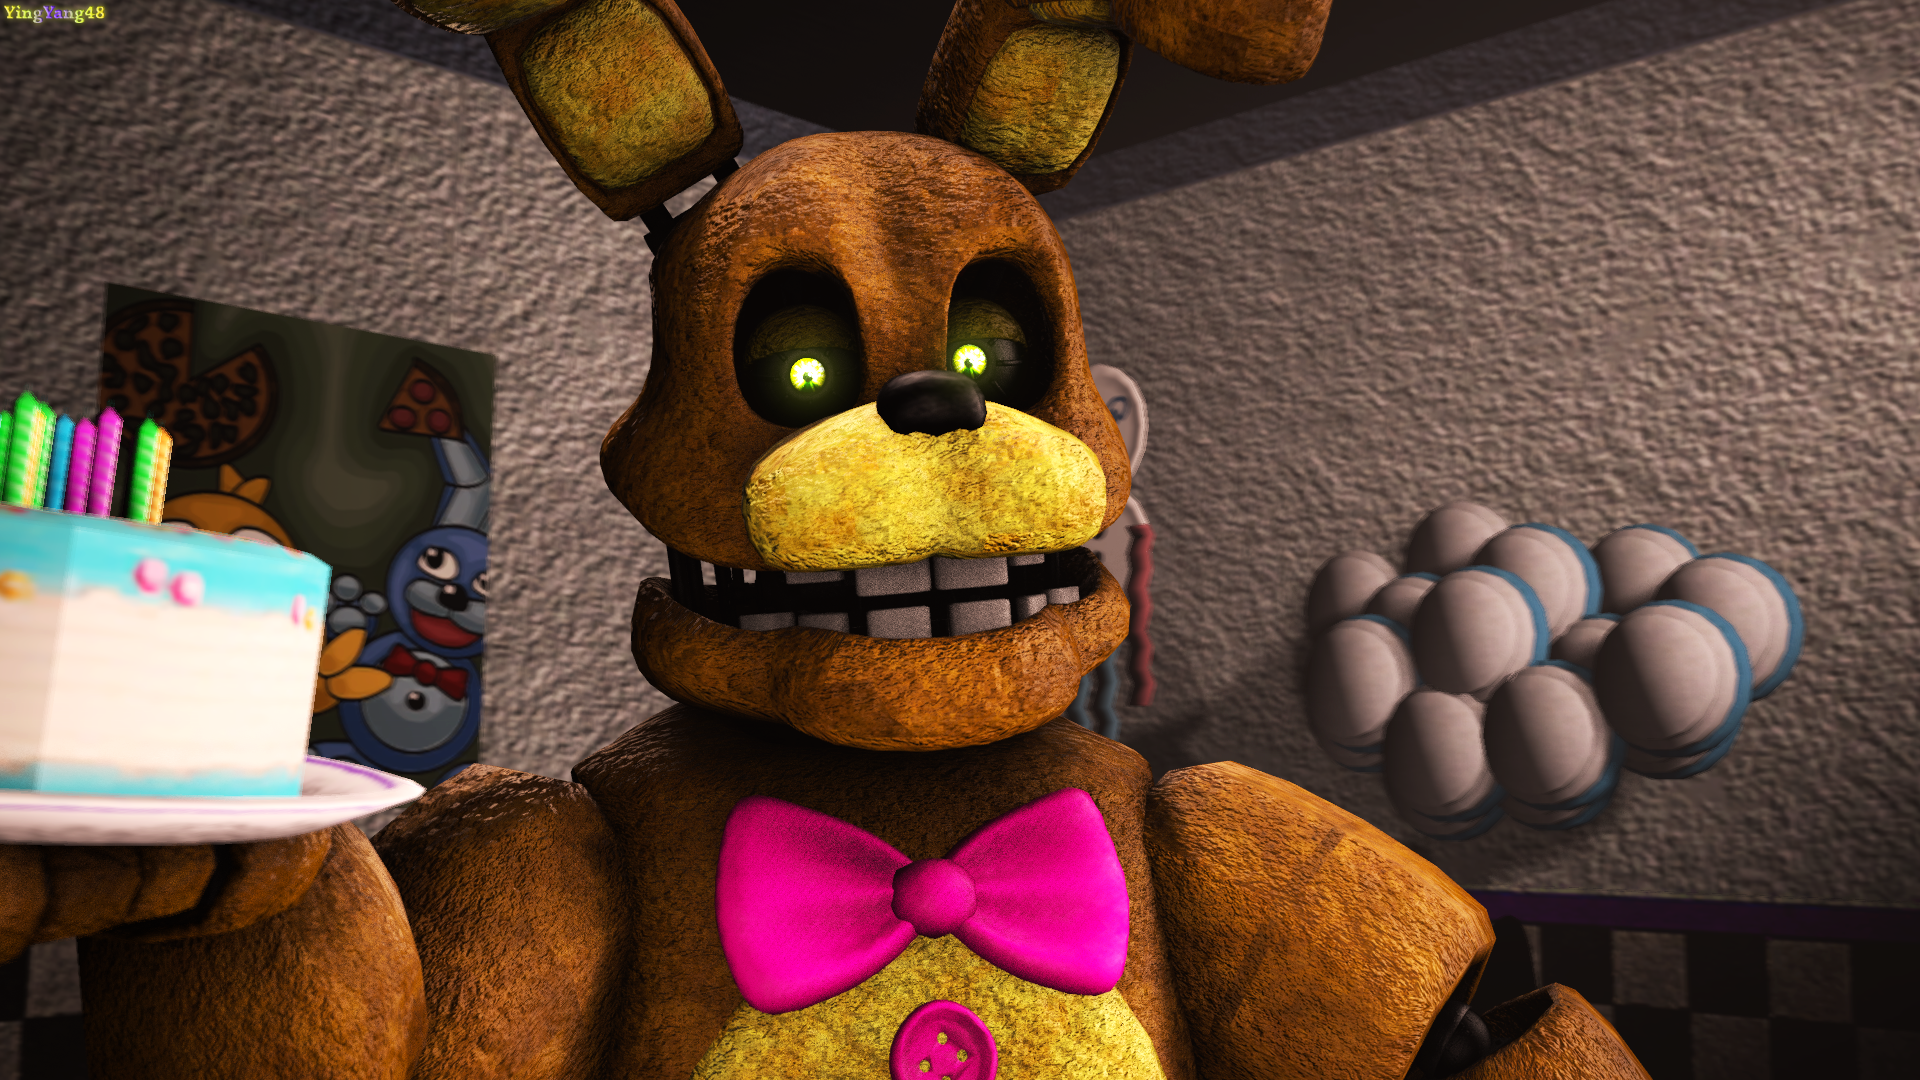 Are you the birthday kid springbonnie new model by yingyang48 on